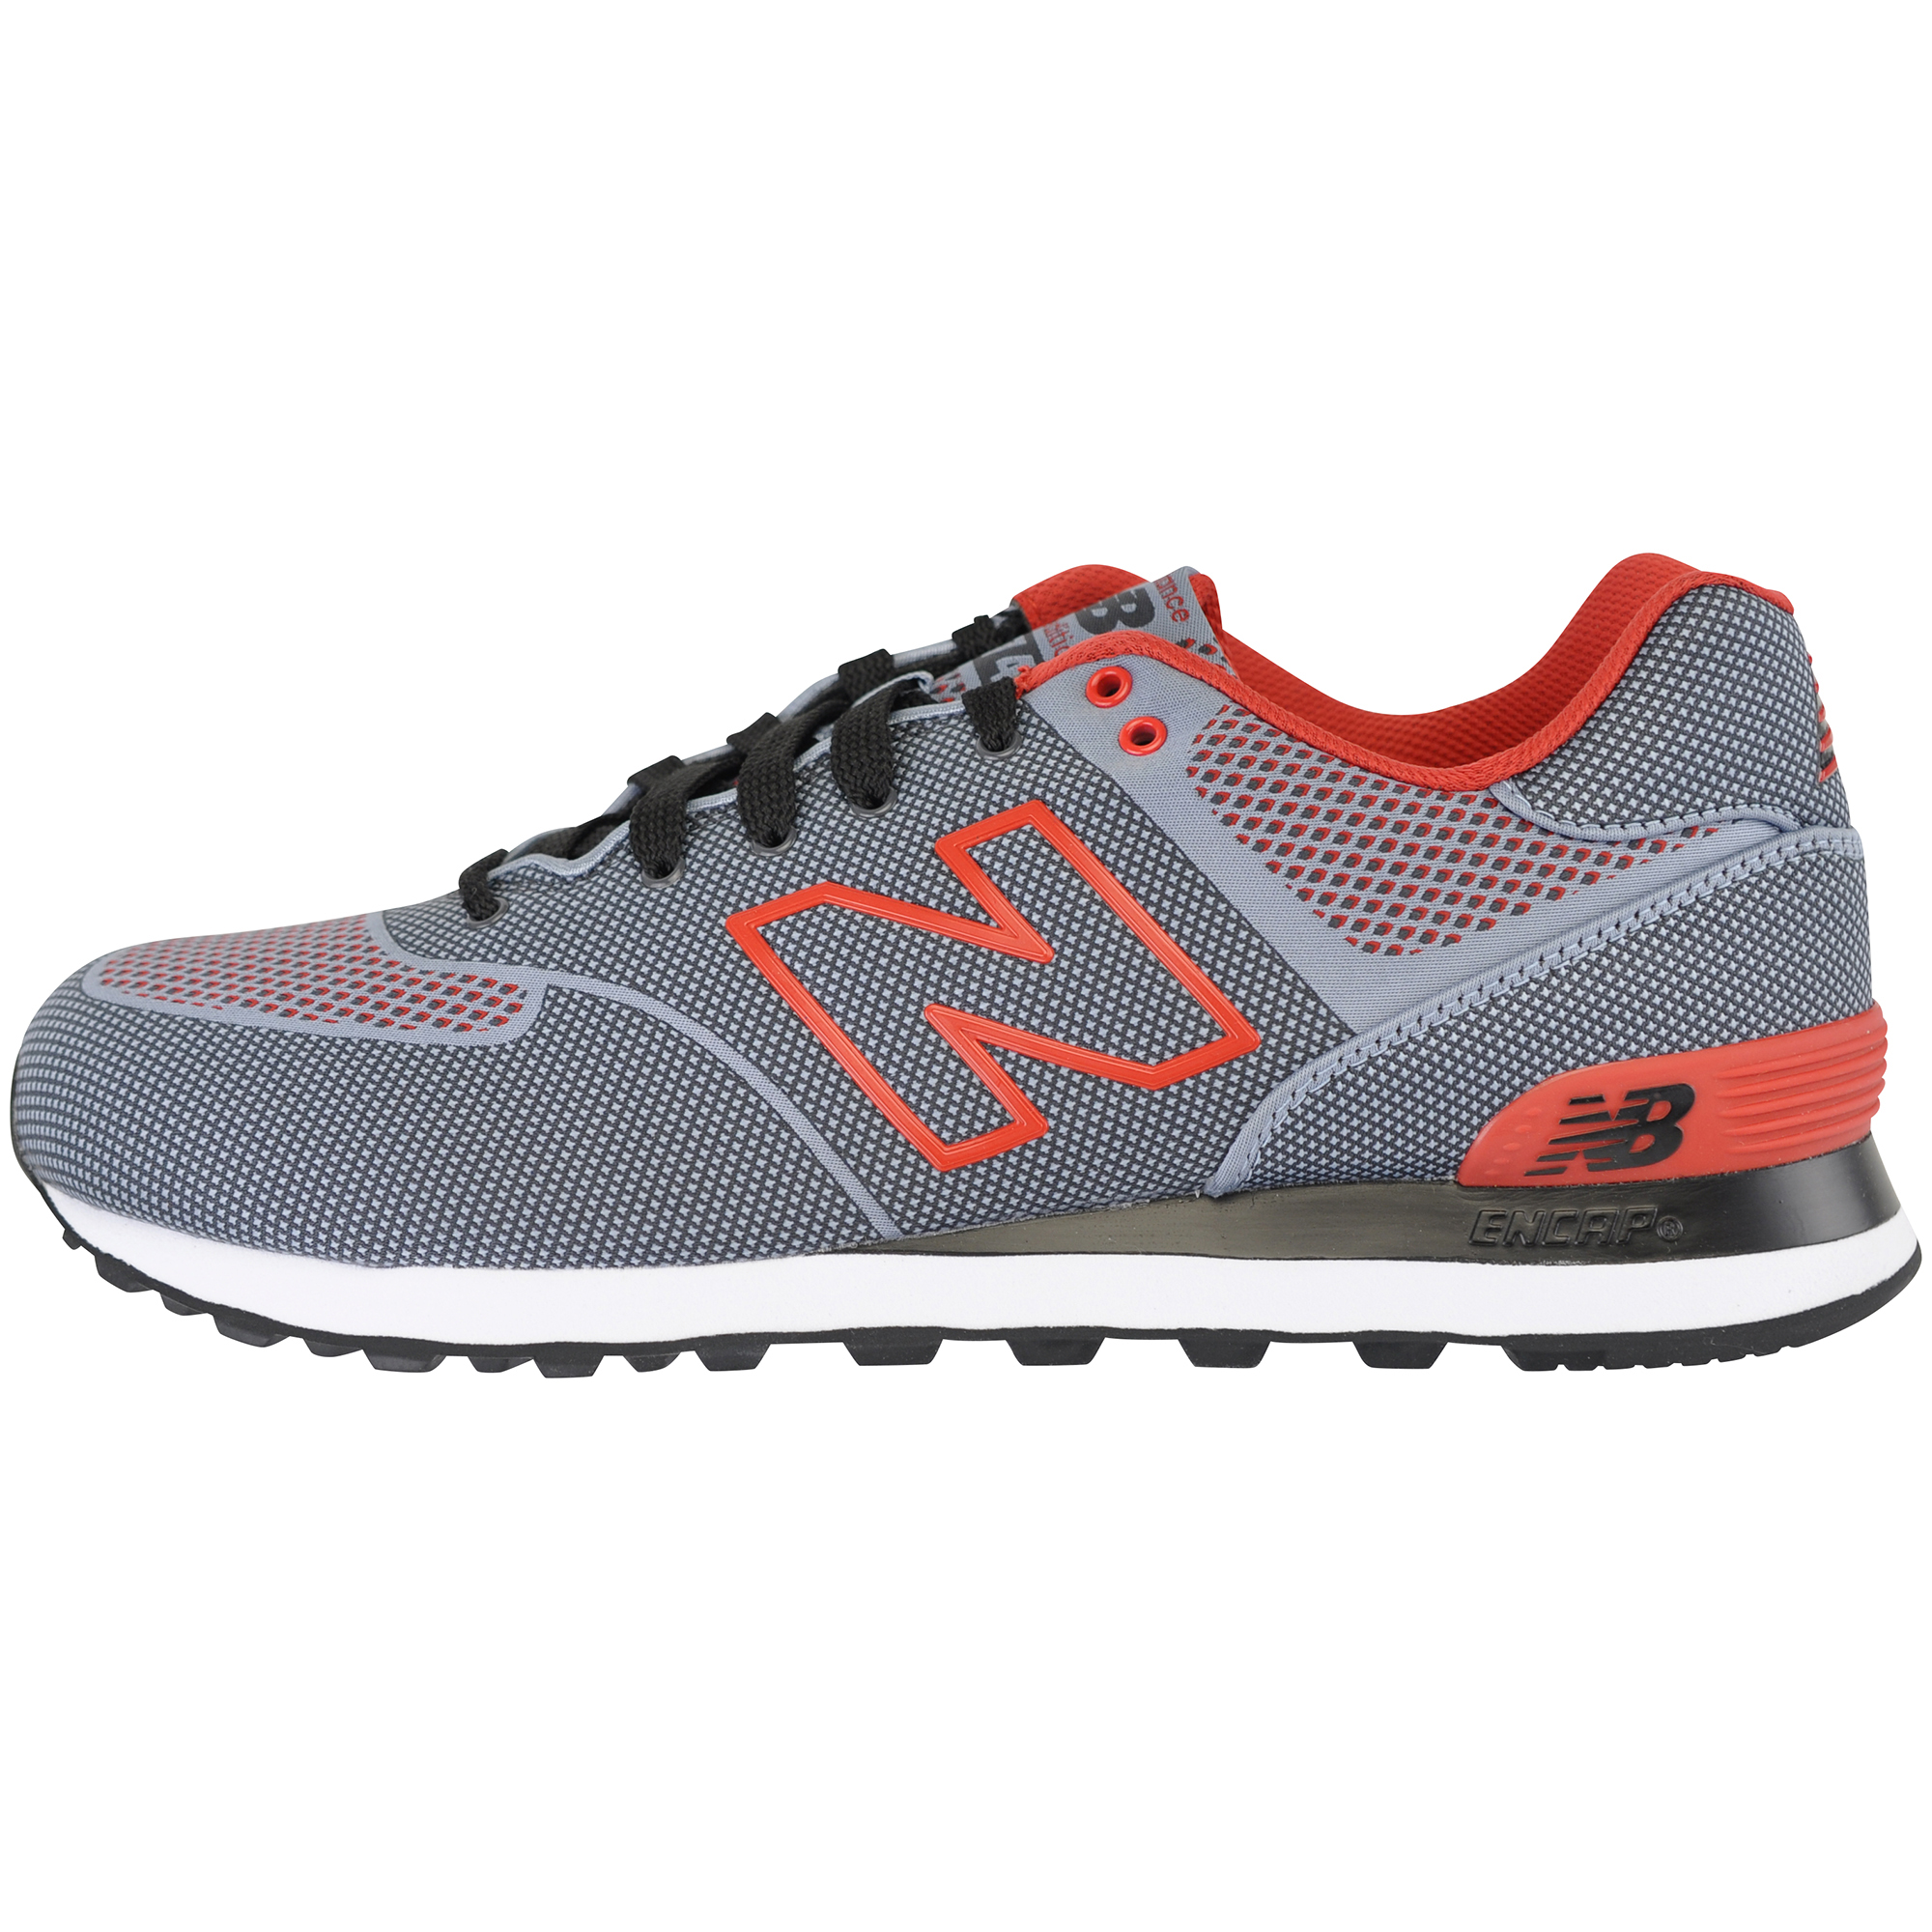 new balance ml574 m574 m373 410 576 577 wl574 herren frauen laufschuhe sneaker ebay. Black Bedroom Furniture Sets. Home Design Ideas